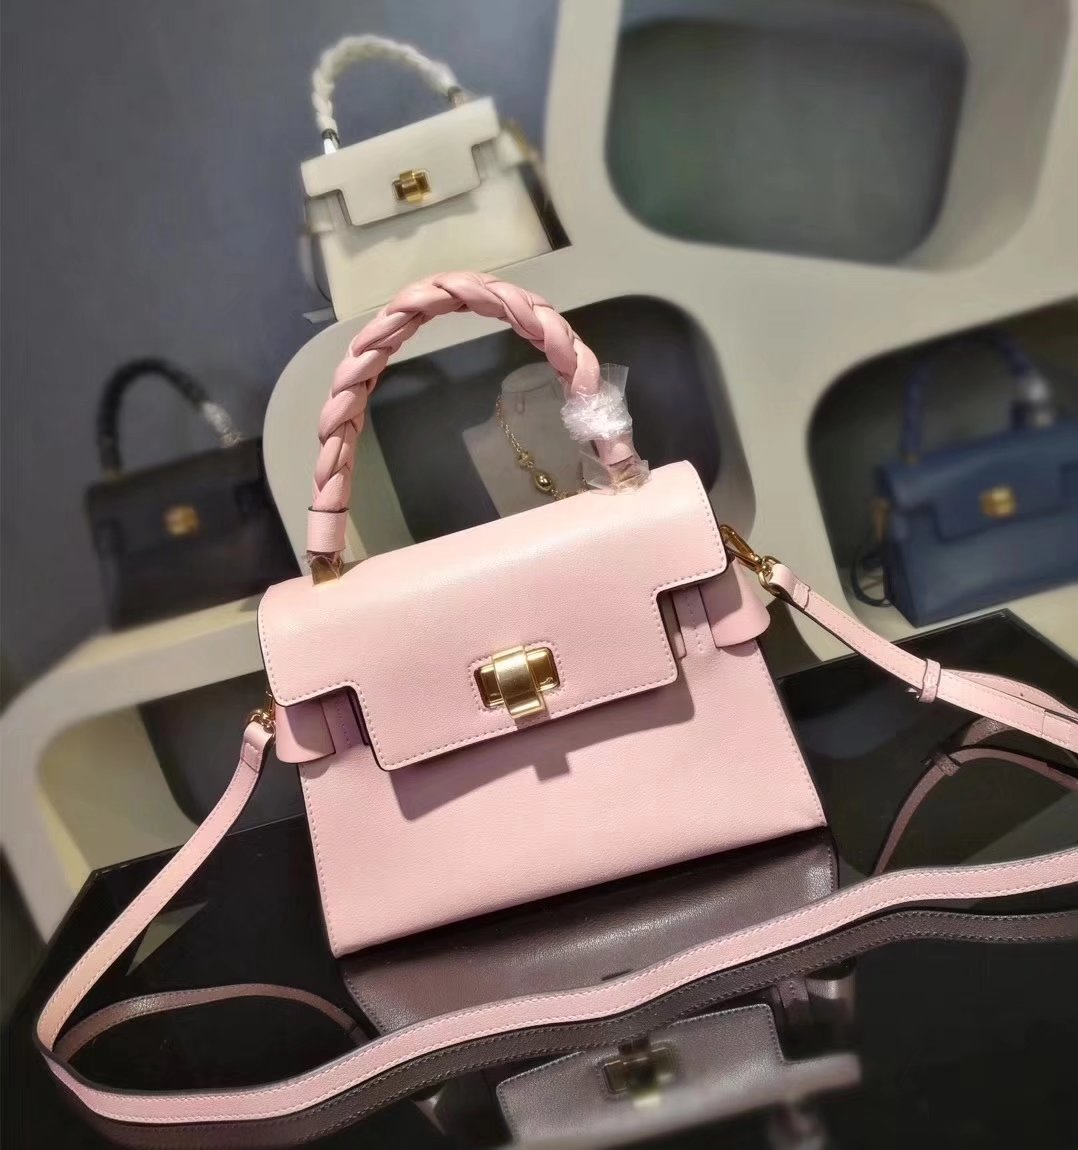 MiuMiu 6812 Women Leather Handbag Pink